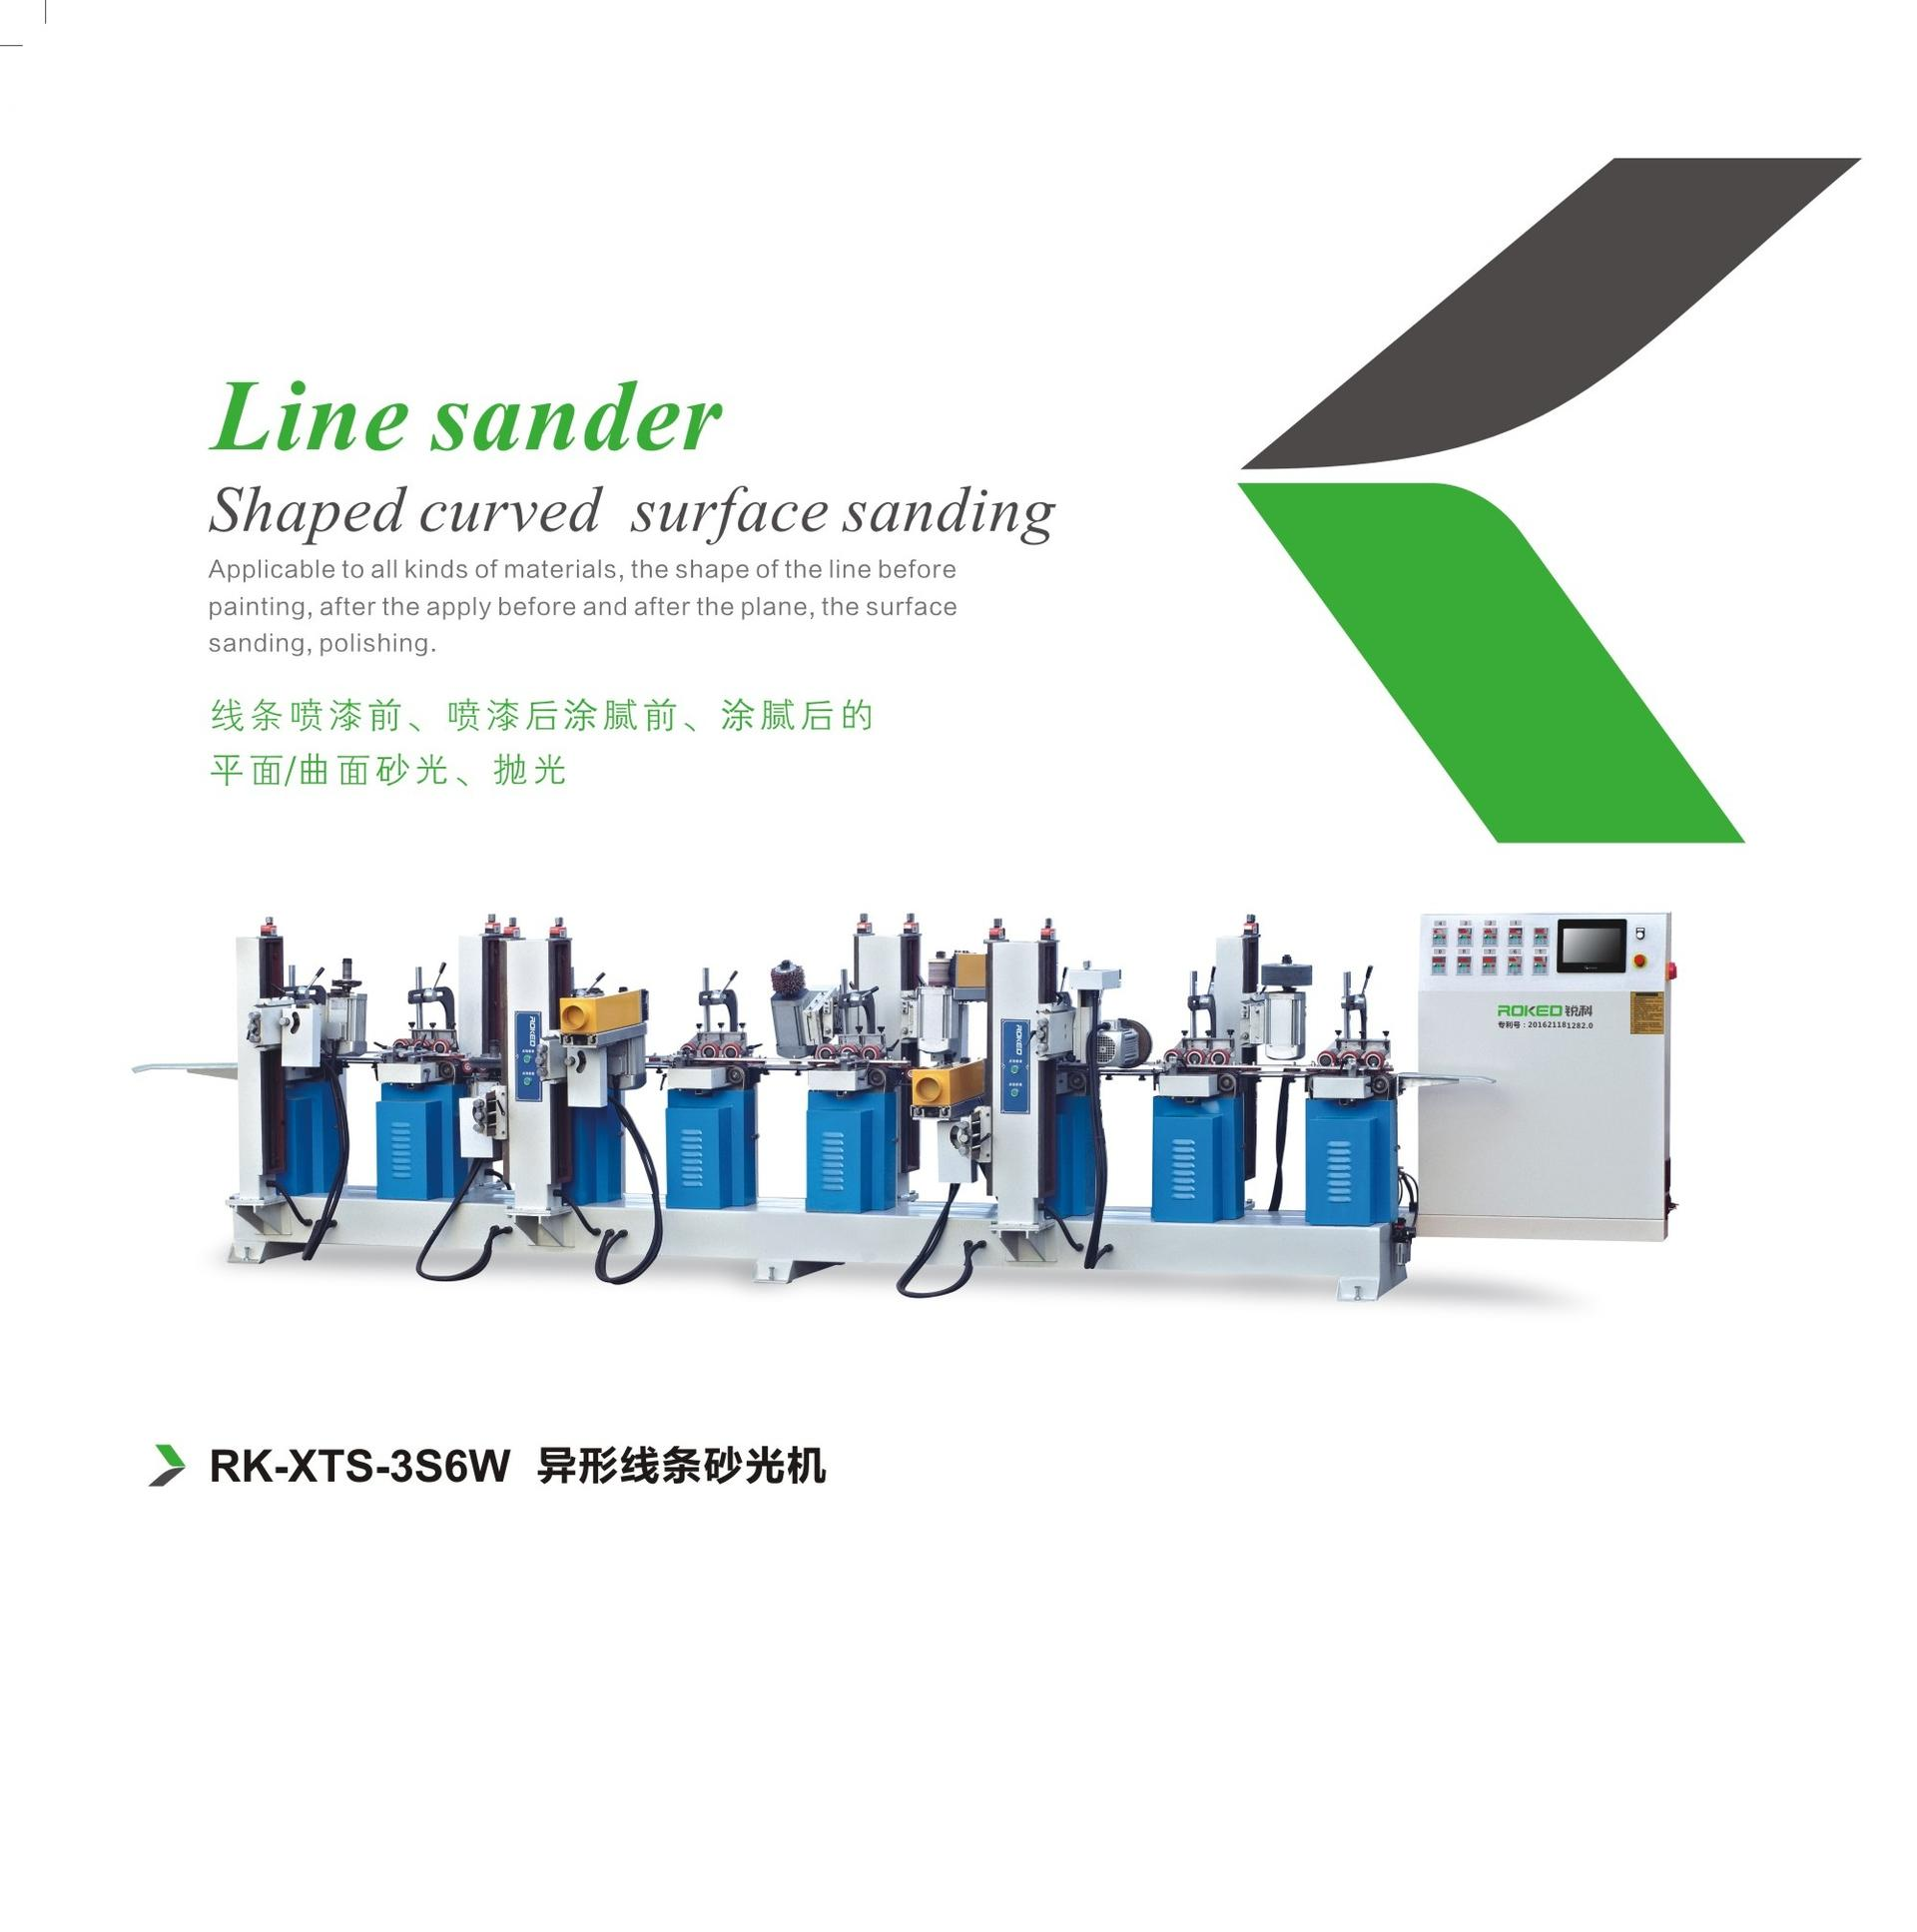 SANHOMT/YONGJILI/ ROKED  Line sander shaped curved surface sanding RK-XTS-3S6W